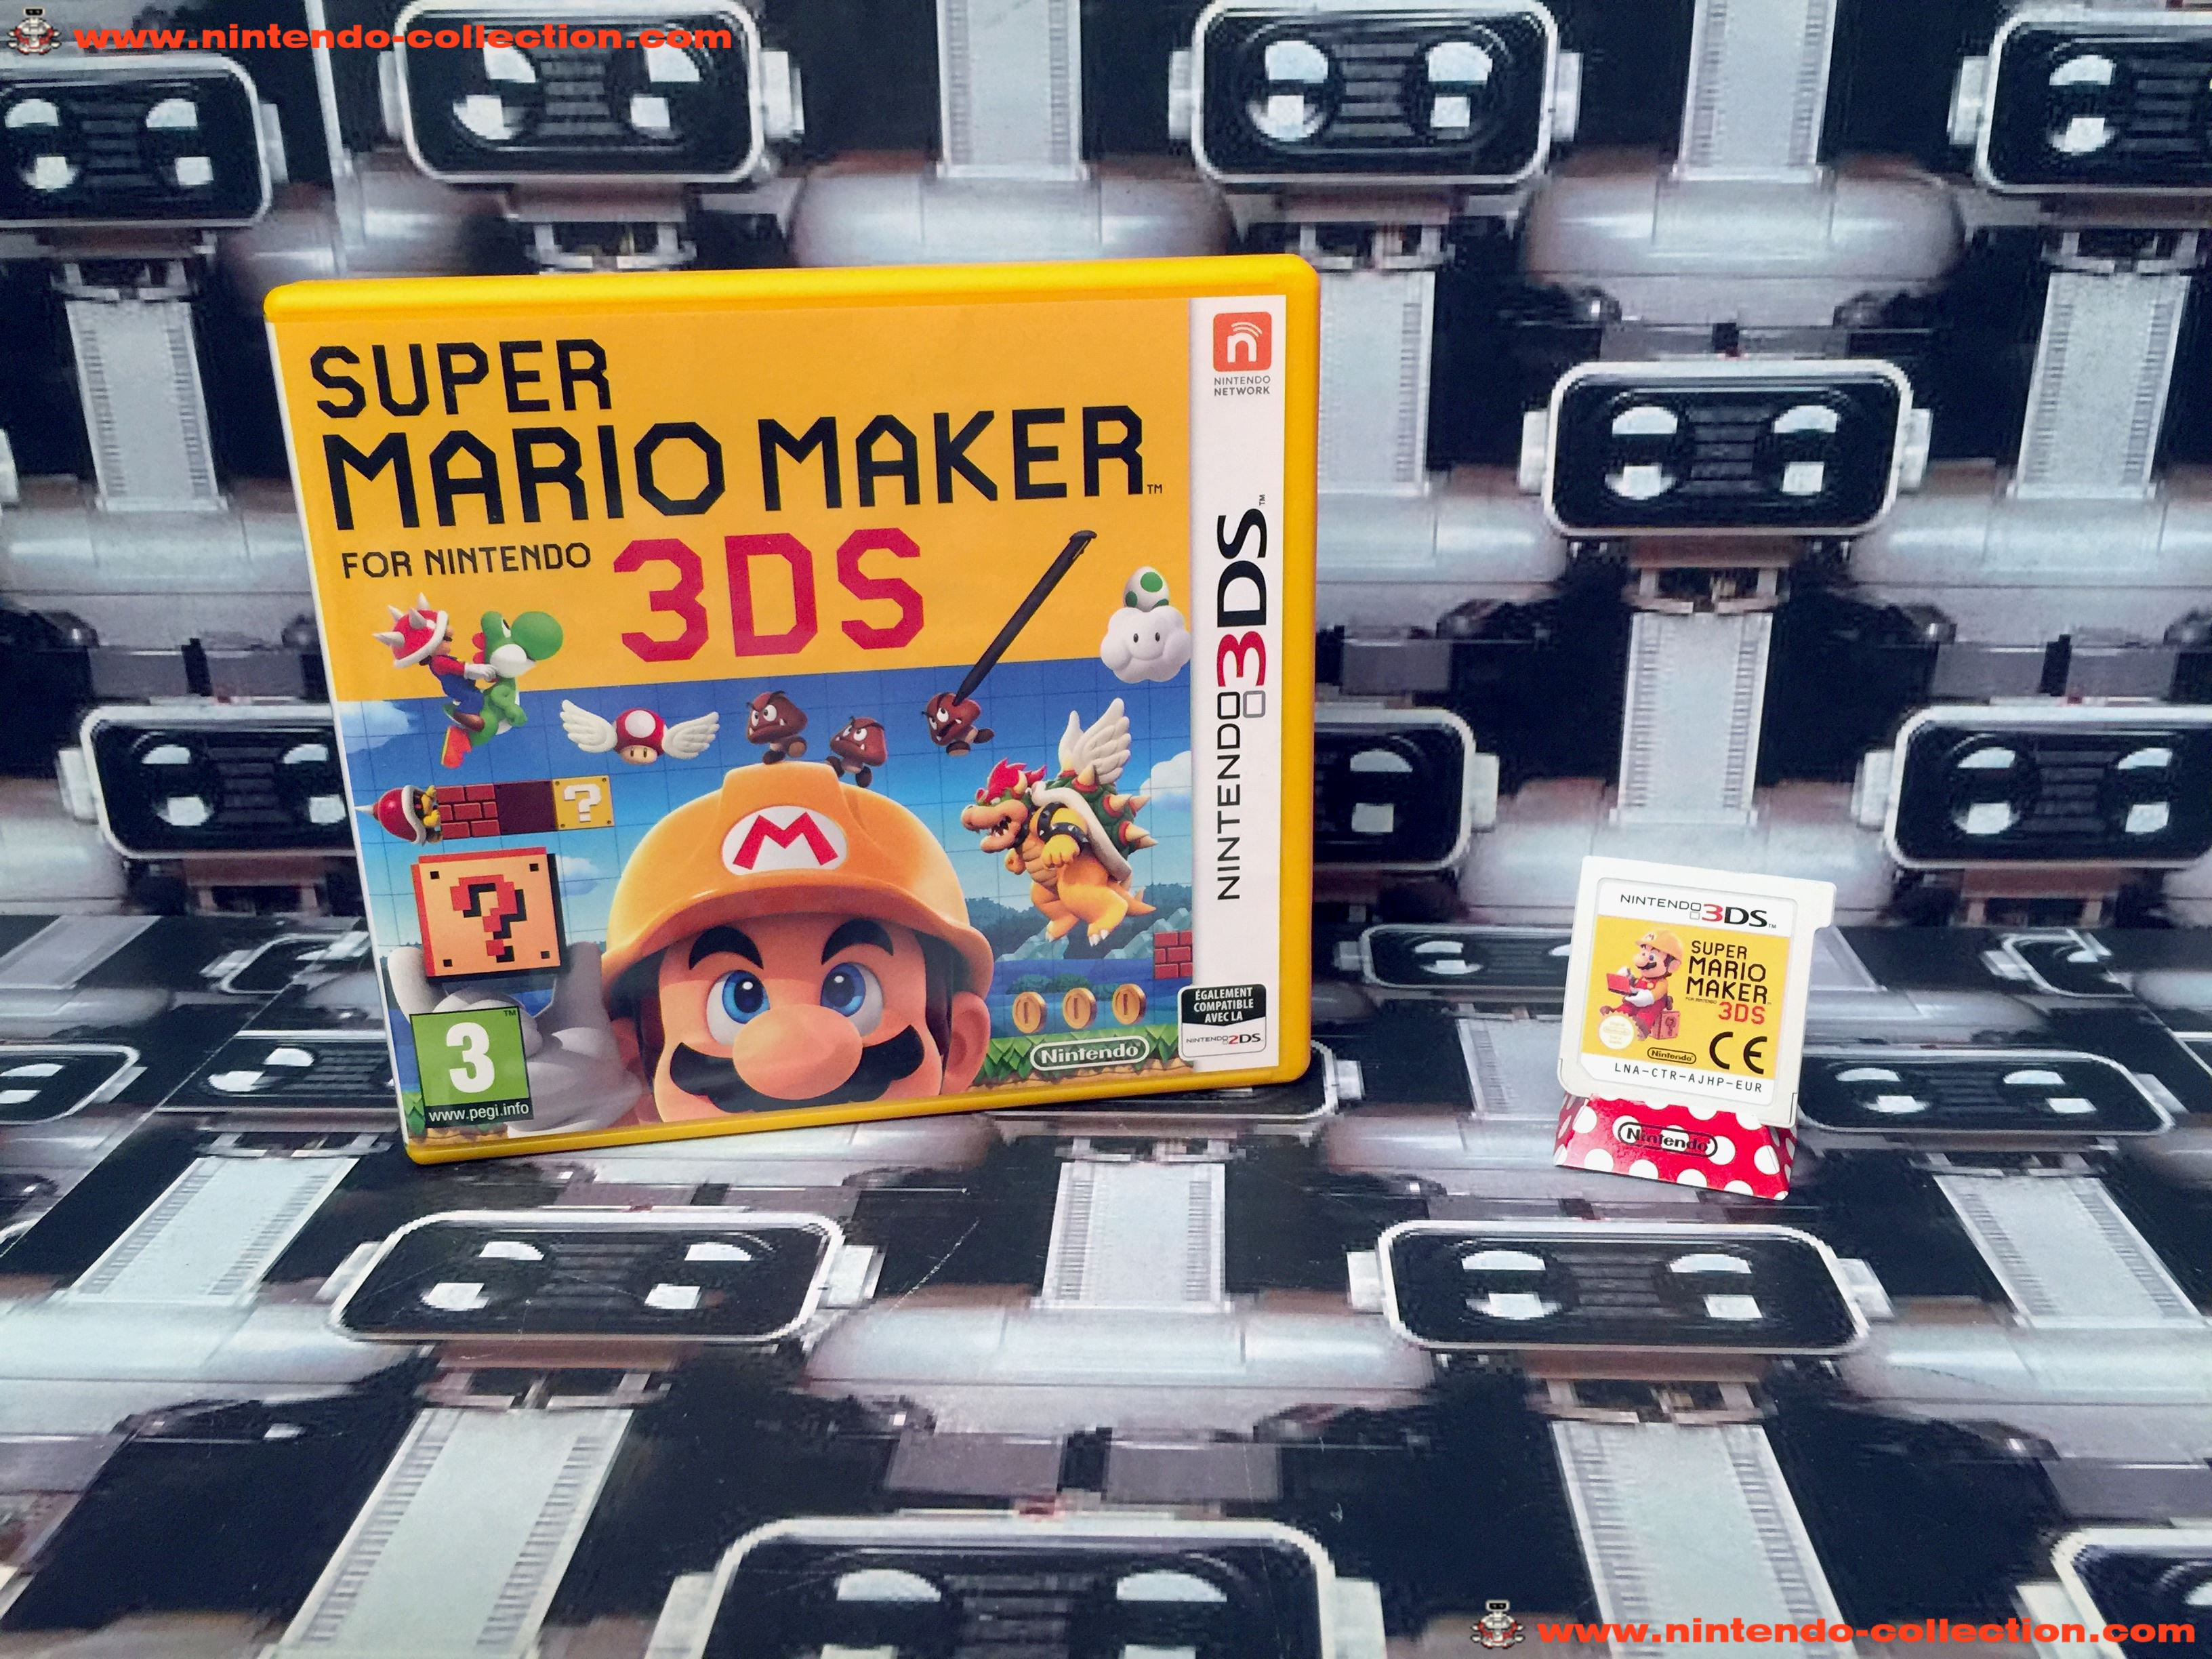 www.nintendo-collection.com - Nintendo 3DS Jeux Game Super Mario Maker for Nintendo 3DS